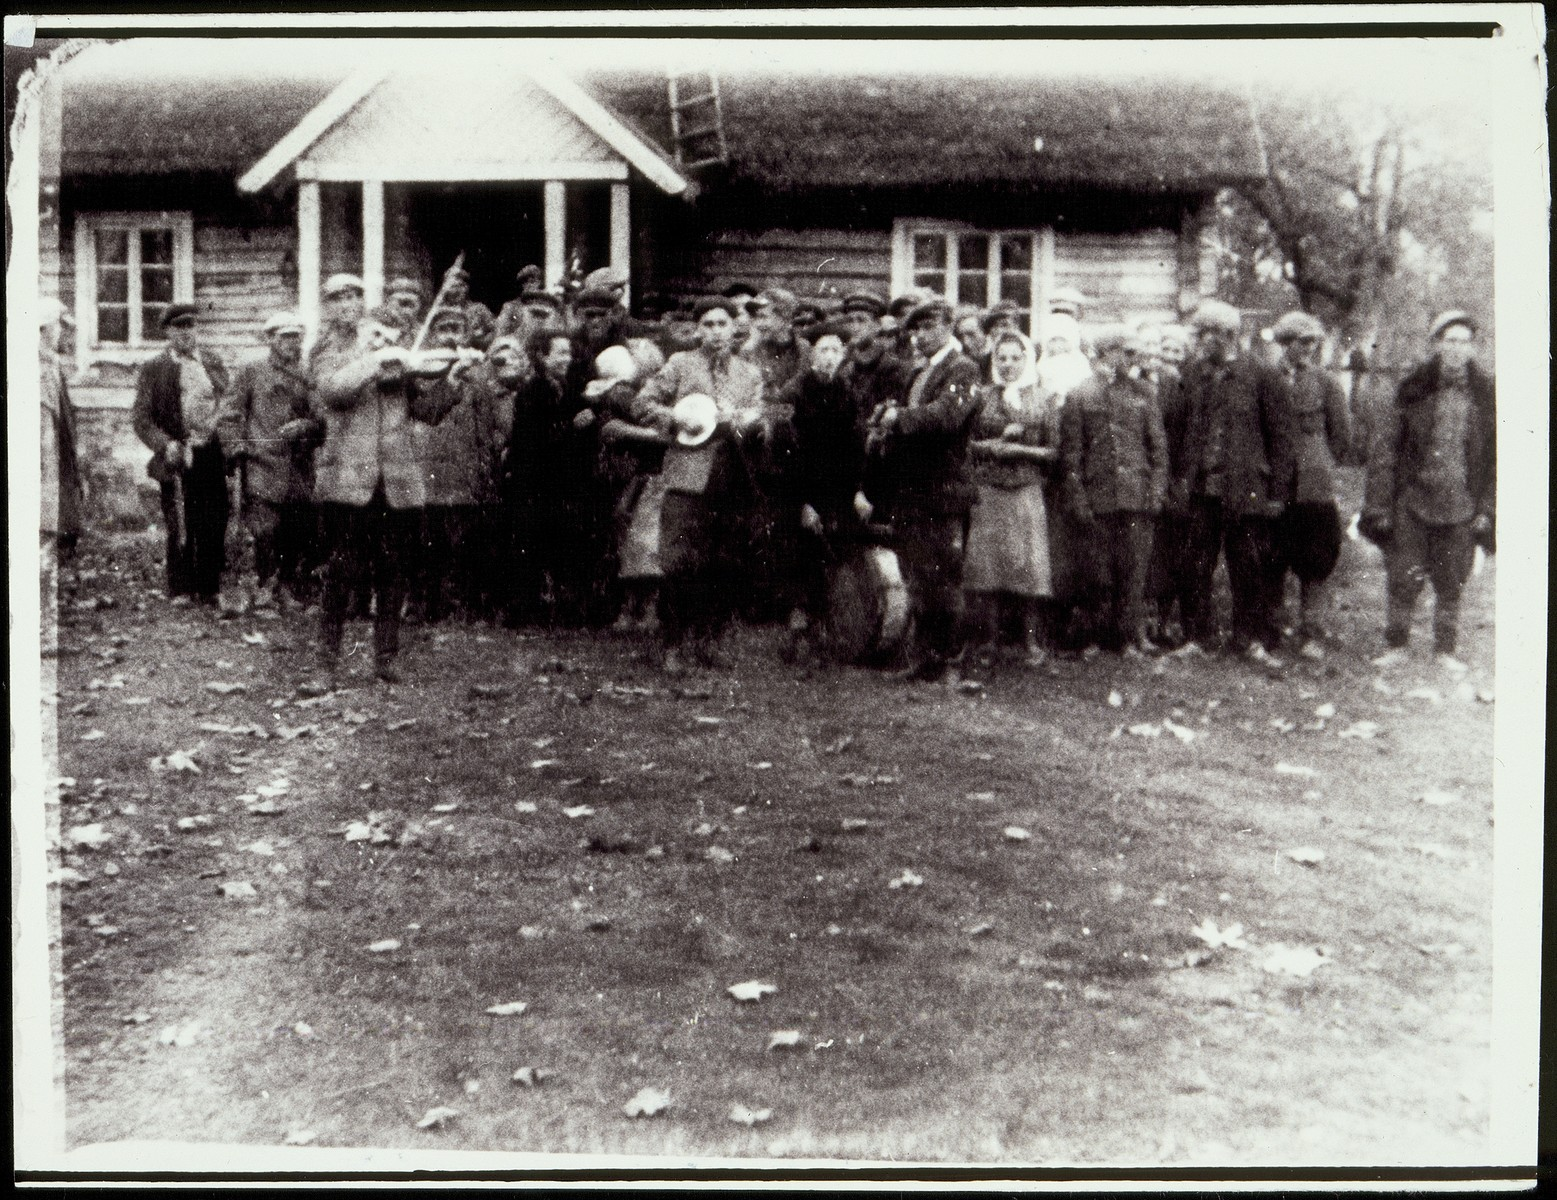 Peasants, some with musical instruments, celebrate the redistribution of land in the region.    Luba Ginunski, one of the shtetl's leading Communists, distributed land to five hundred poor Polish peasants in the autumn of 1940.  Luba, is pictured dressed in black, speaking to a woman with a white kerchief.  She survived the war in the Soviet interior and afterwards immigrated to Israel.